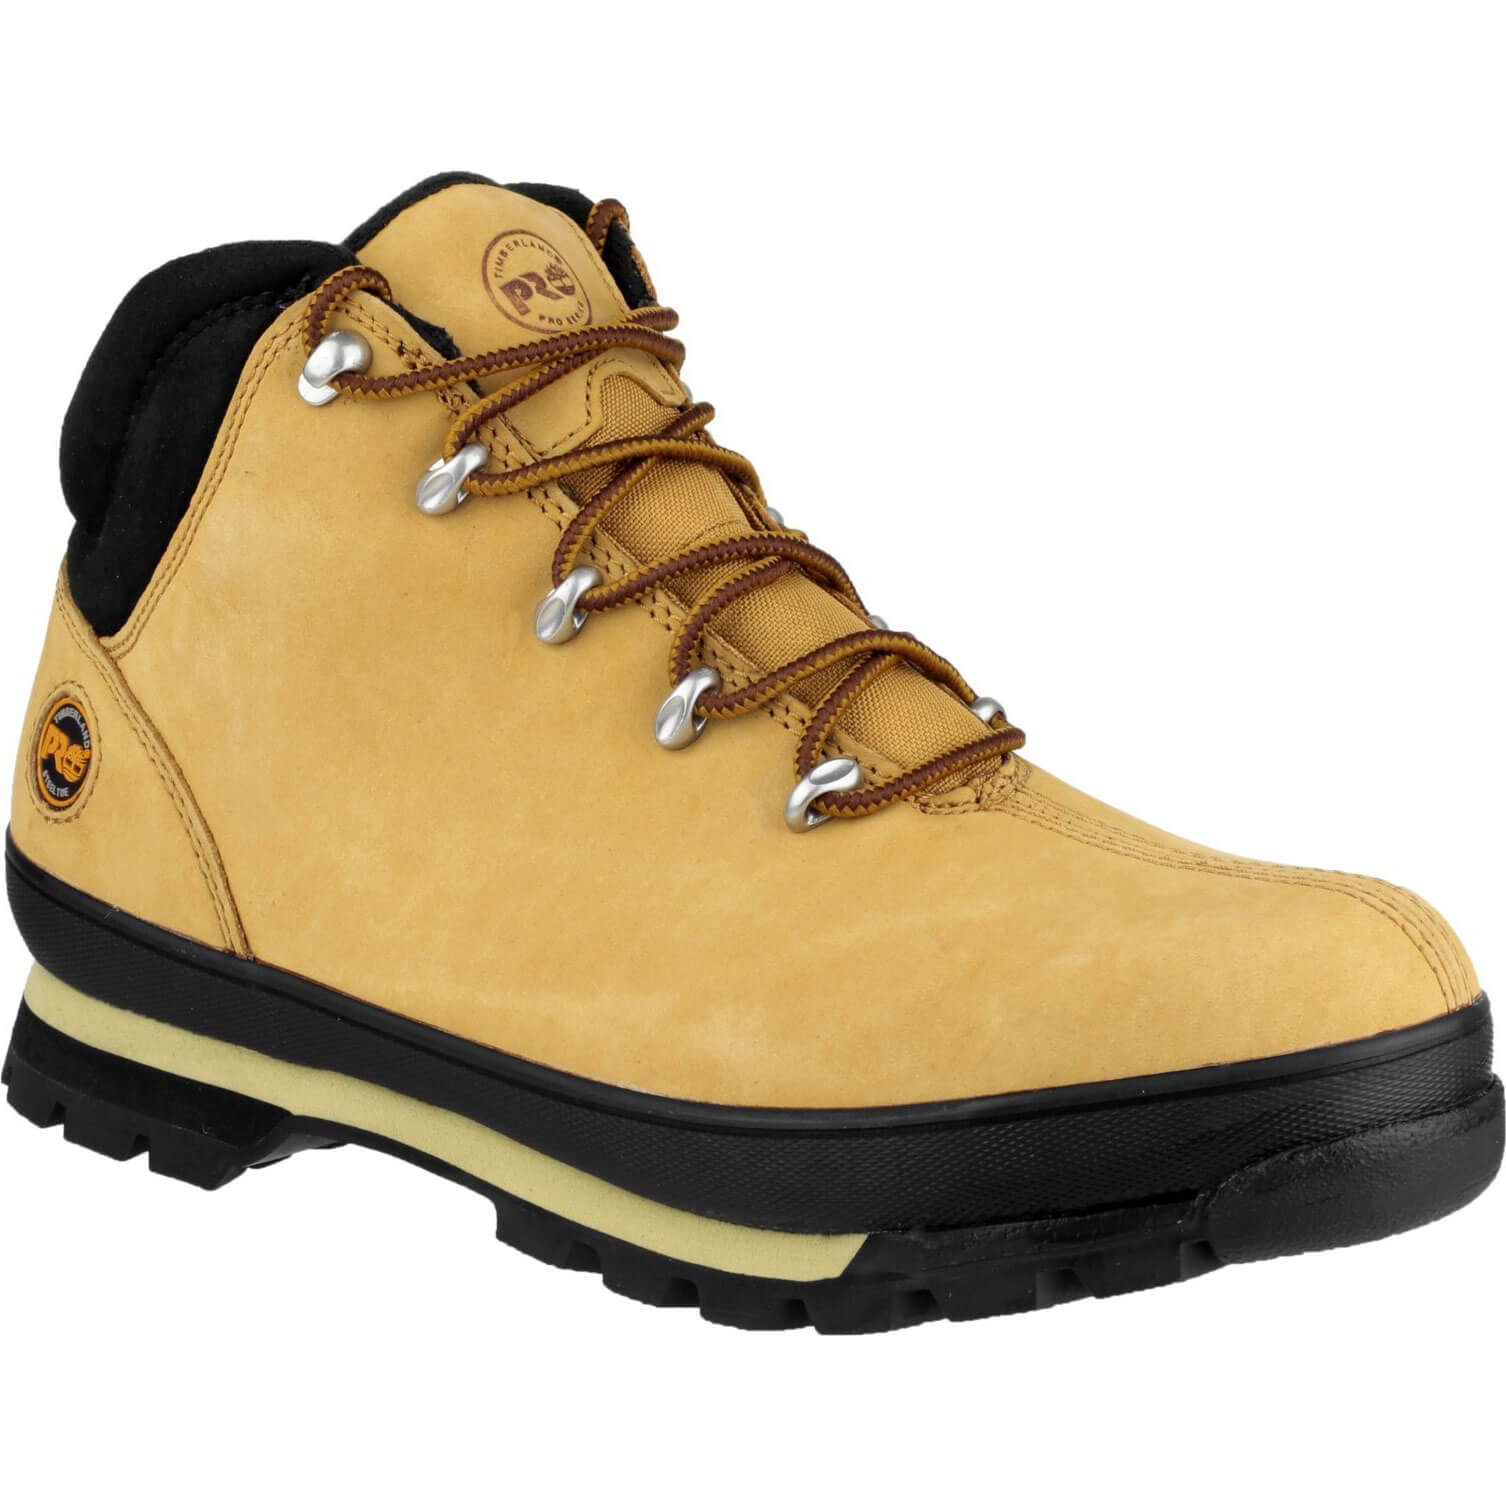 Image of Timberland Pro Mens Split Rock Safety Boots Wheat Size 12